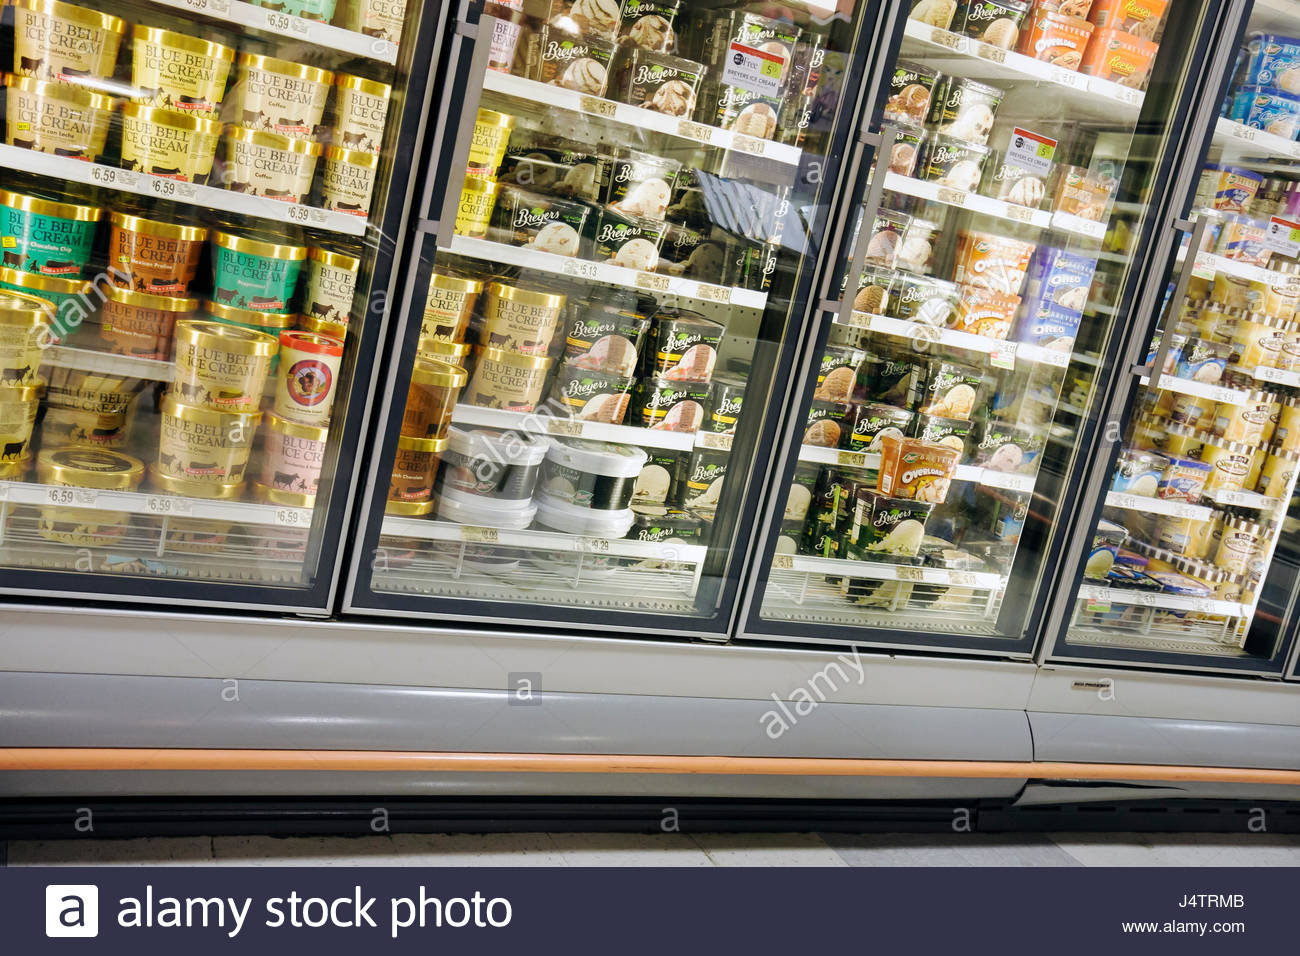 Palm Beach Florida Publix Grocery Store supermarket company business shopping groceries frozen foods freezer case - Stock Image